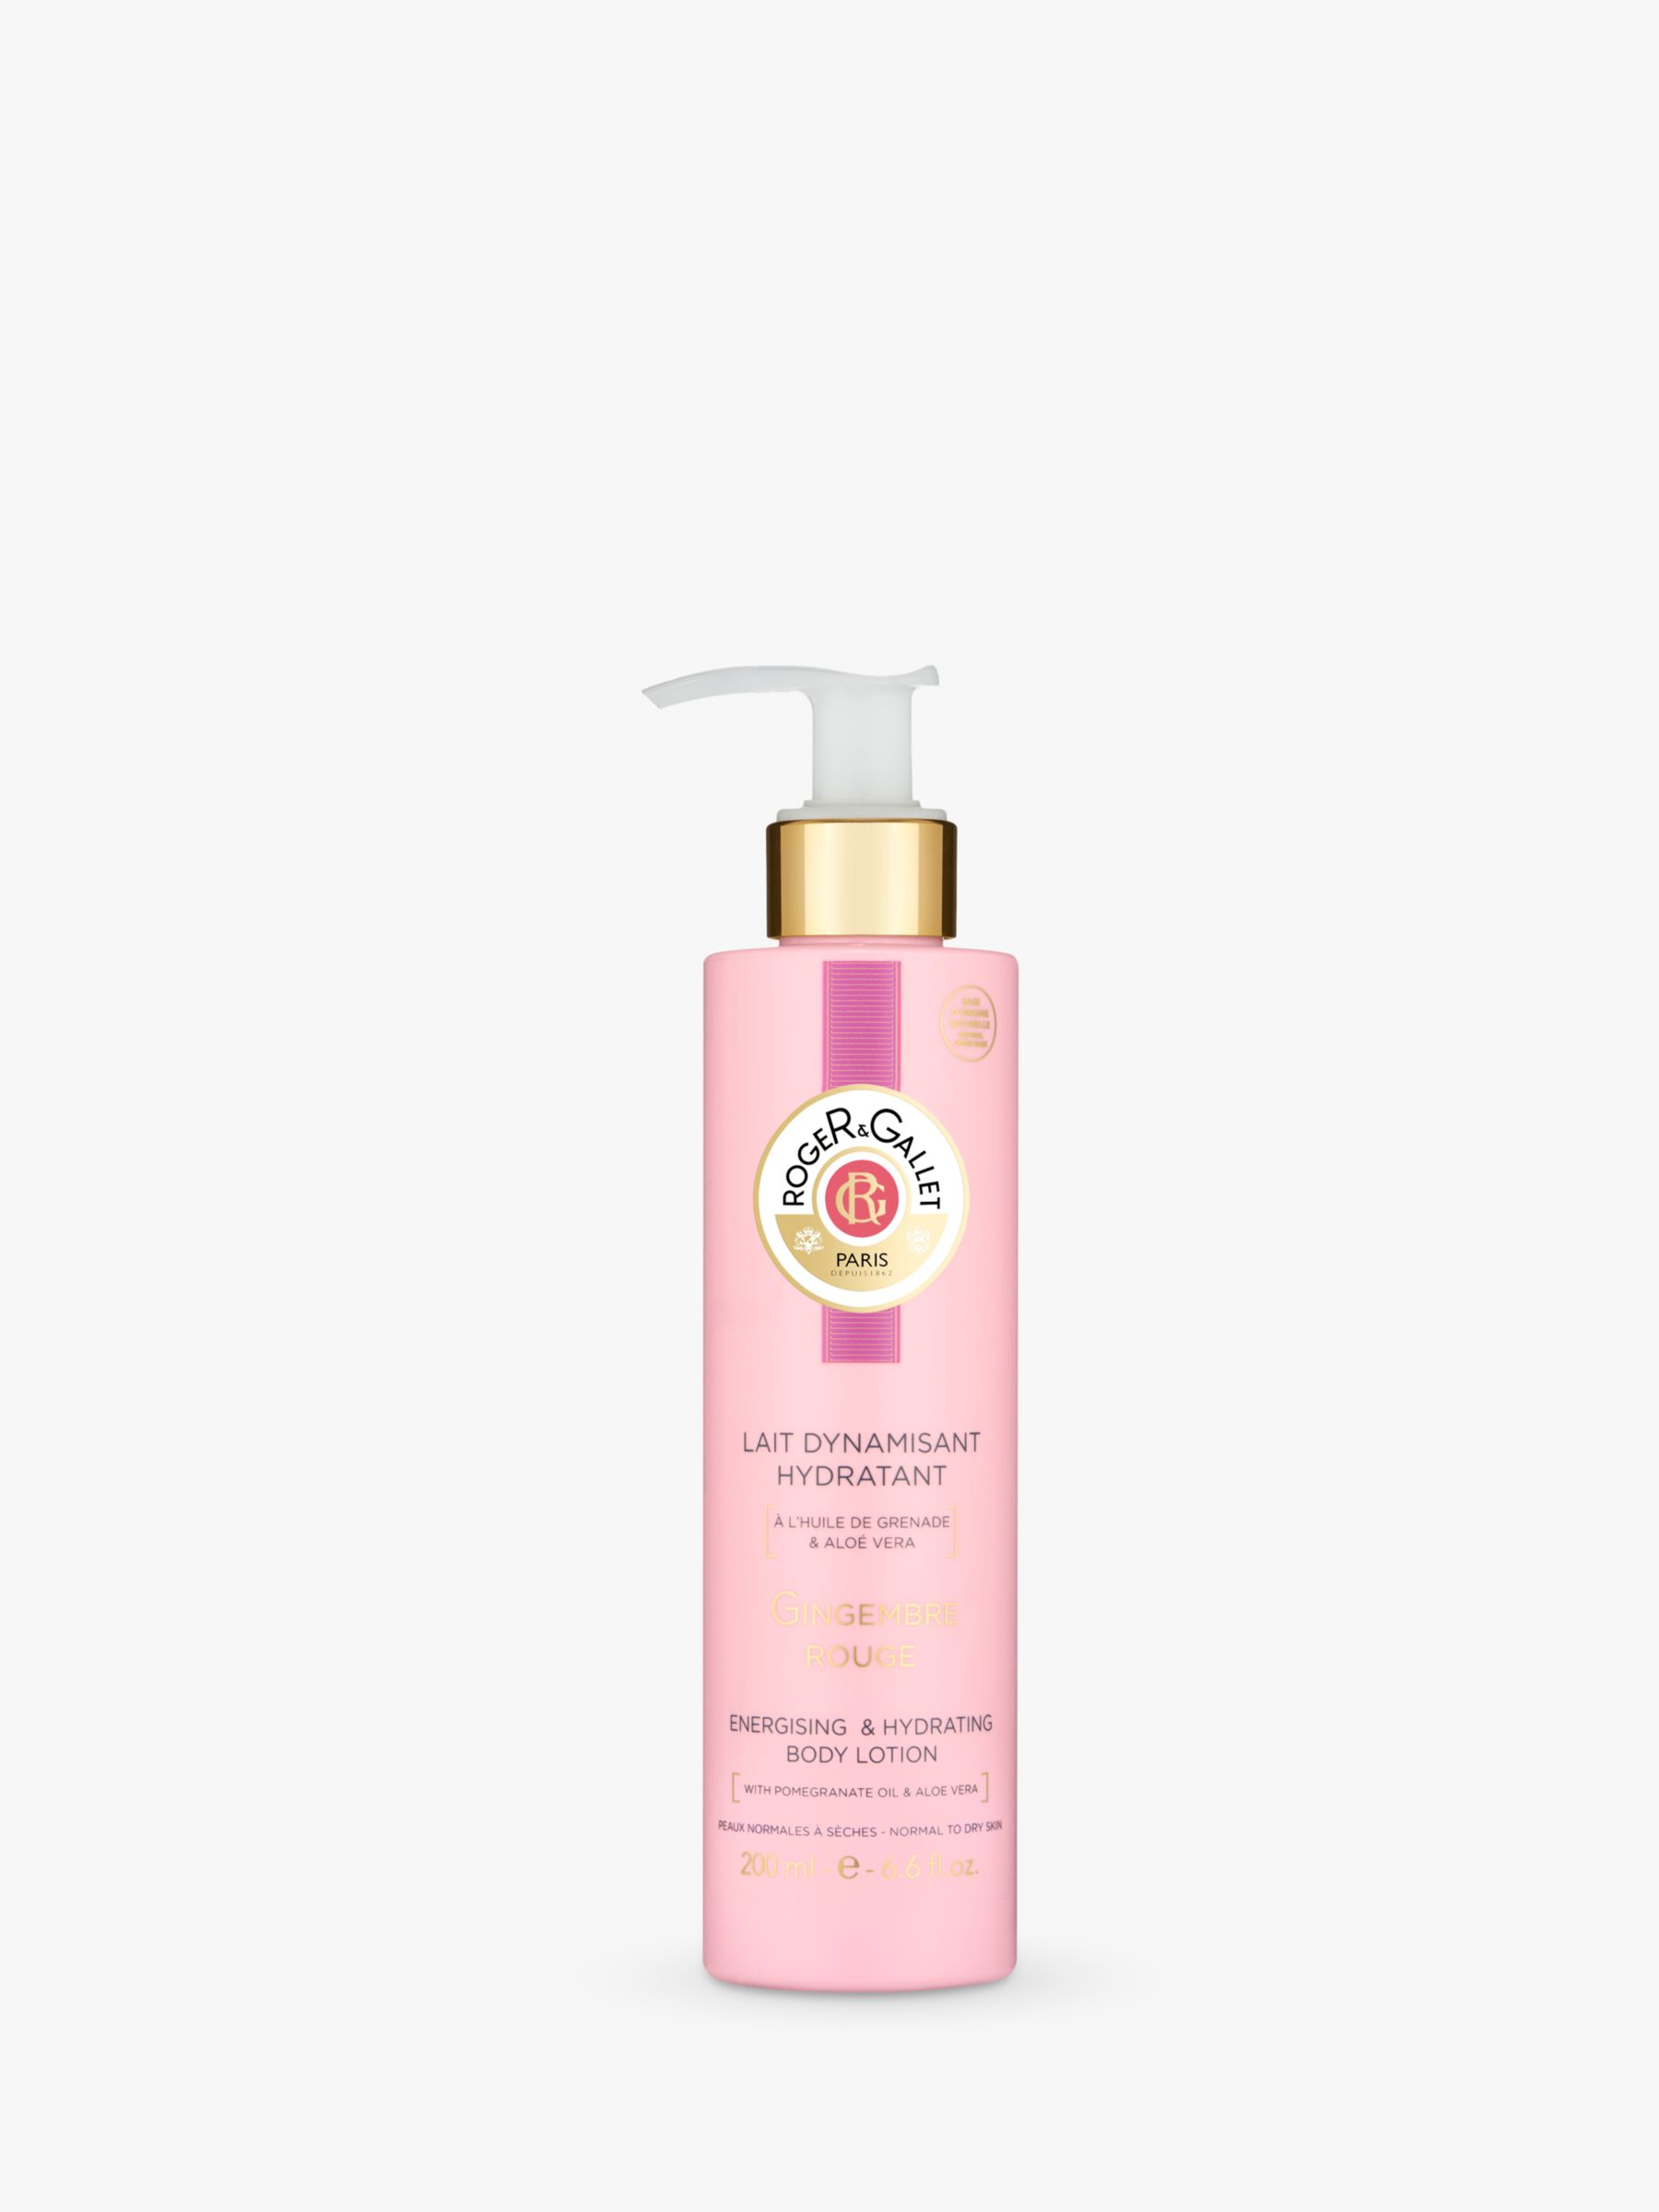 Roger & Gallet Roger & Gallet Gingembre Rouge Hydrating Body Lotion, 200ml